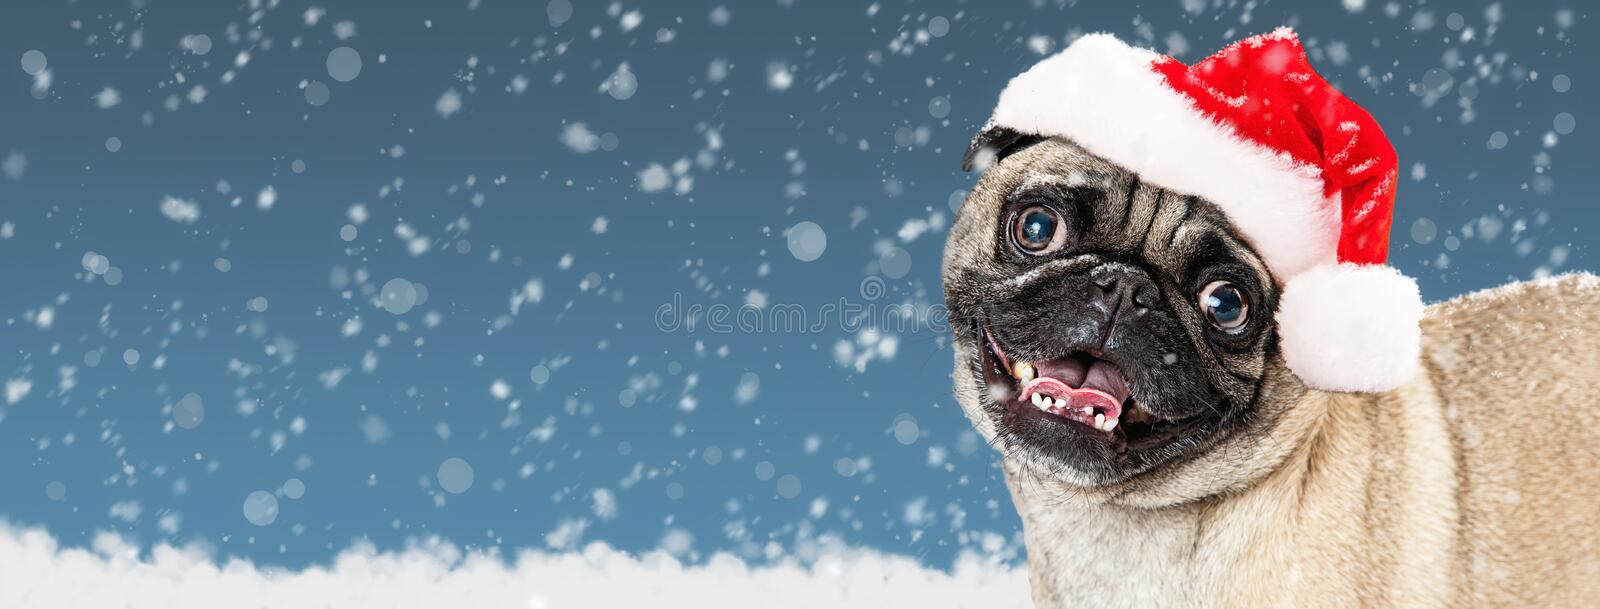 Funny Pug Dog Wearing A Blue Winter Hat Stock Image